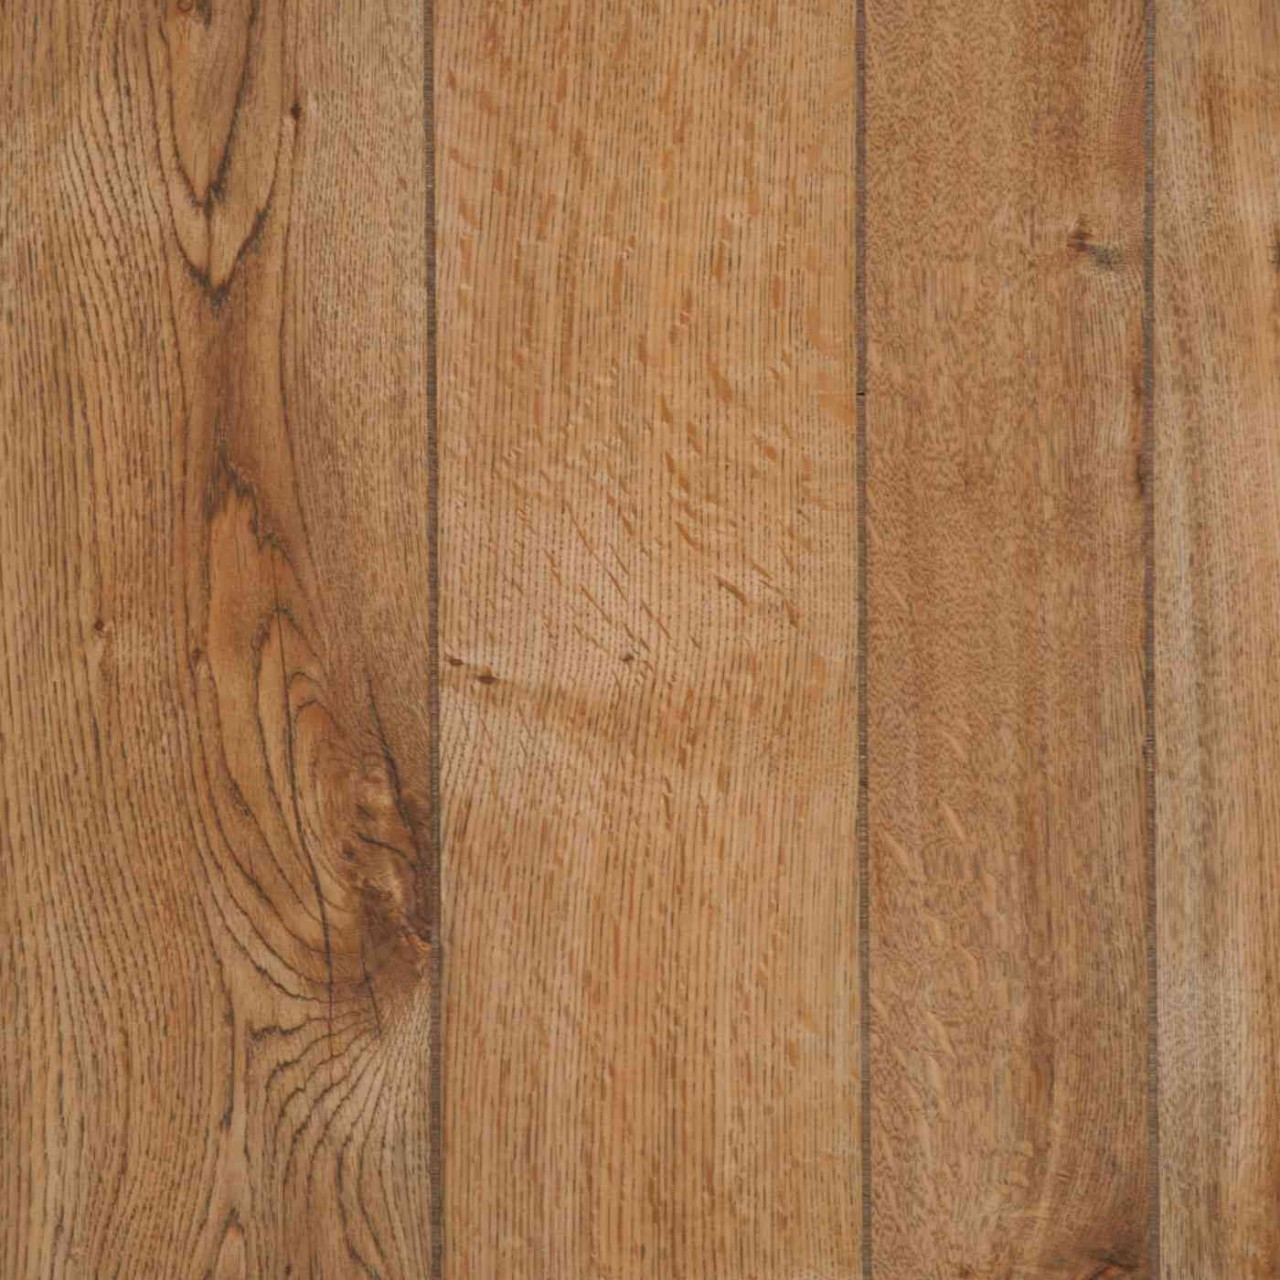 Wood Paneling Gallant Oak Wall Paneling 9 Groove